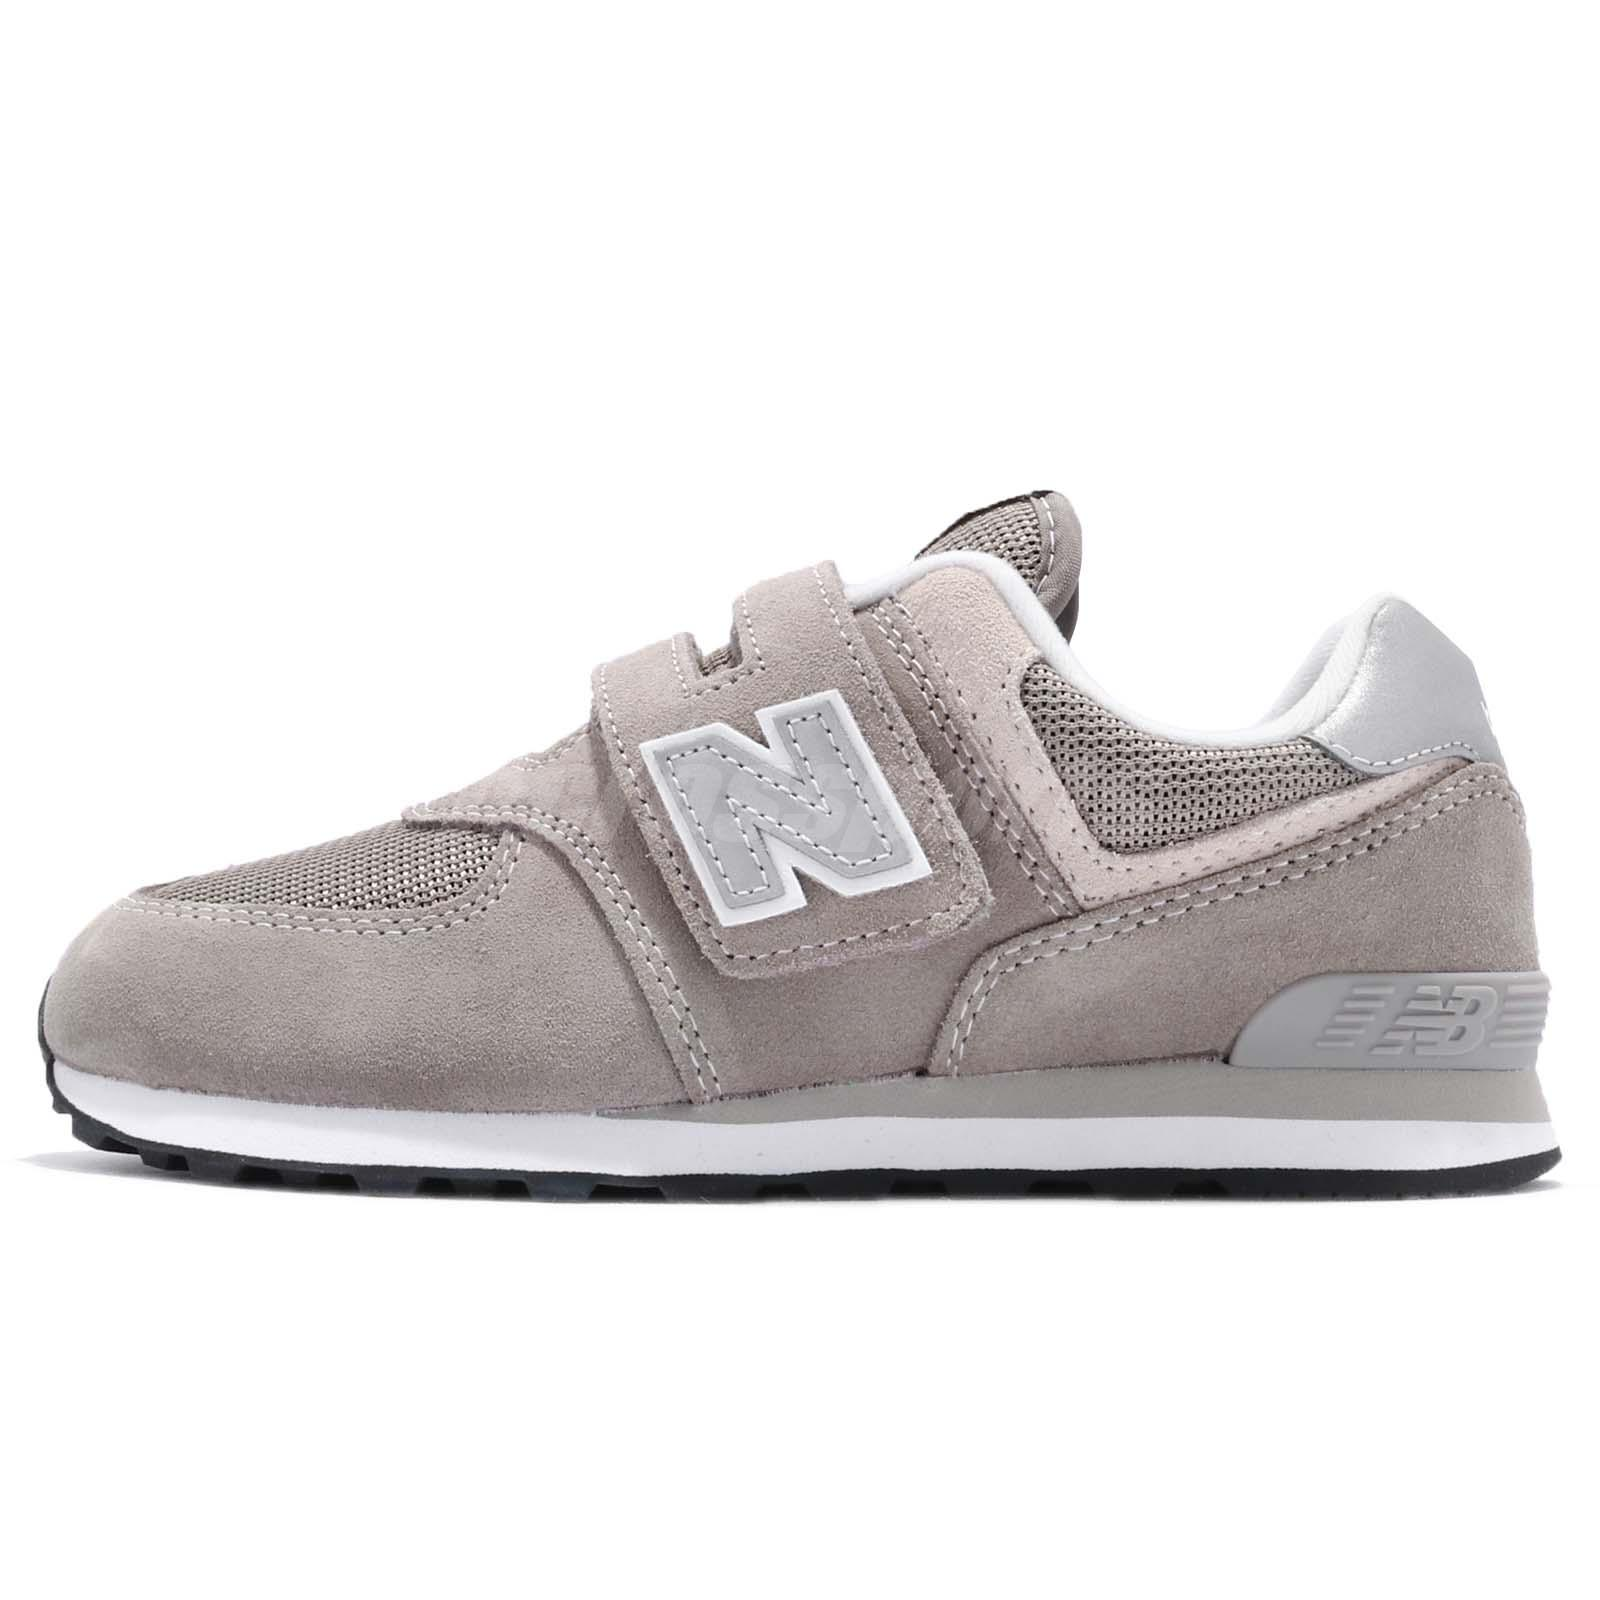 super popular 08f26 ec1c0 Details about New Balance YV574GG W Wide 574 Grey White Kids Youth Running  Shoes YV574GGW